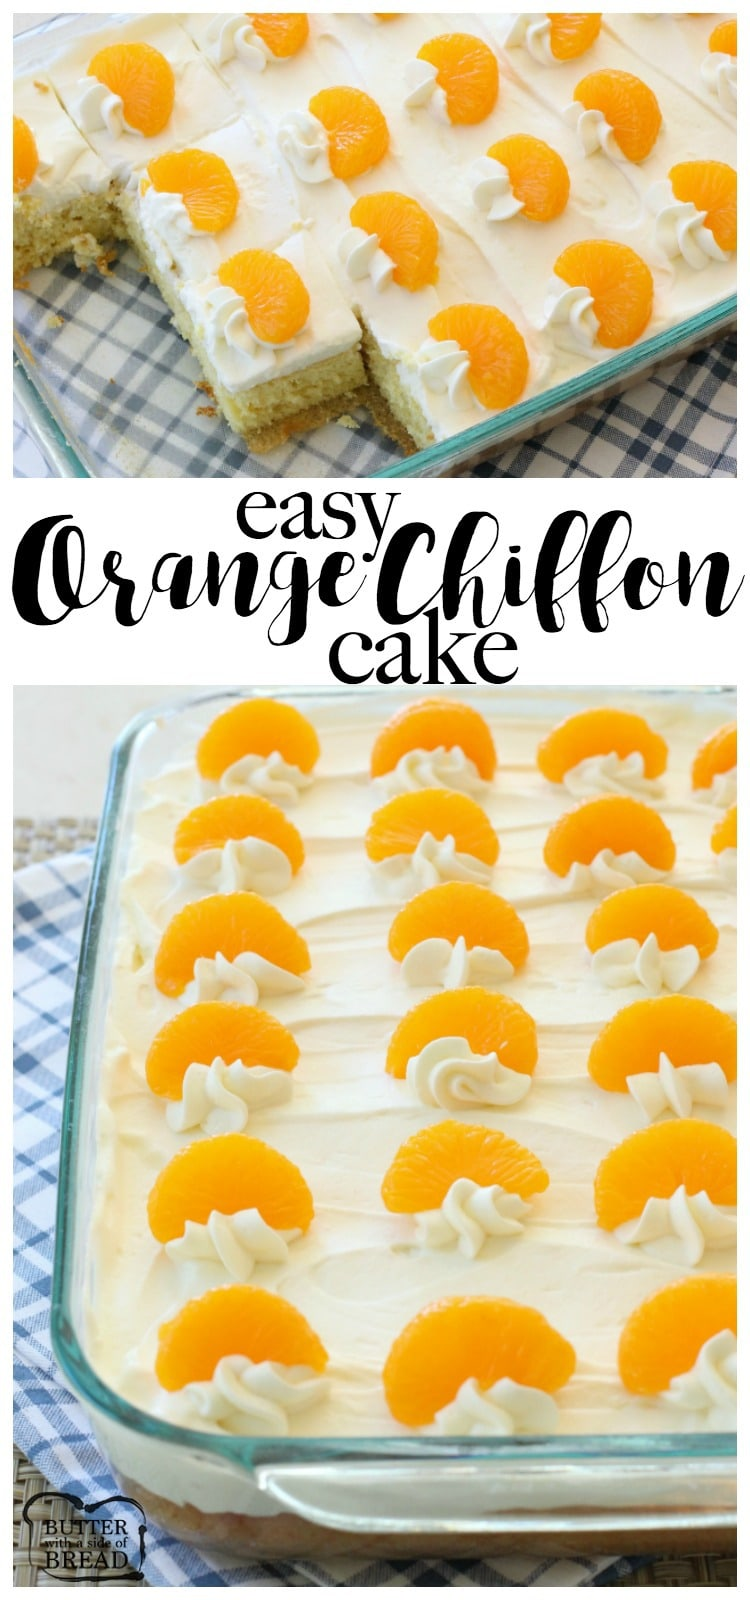 Orange Chiffon Cake is a light, delicate and perfectly sweet citrus cake that's incredibly easy to make! Perfect for family gatherings and parties as it's baked in a 9x13. You can double it to make a sheet cake too! Easy chiffon cake recipe from Butter With A Side of Bread